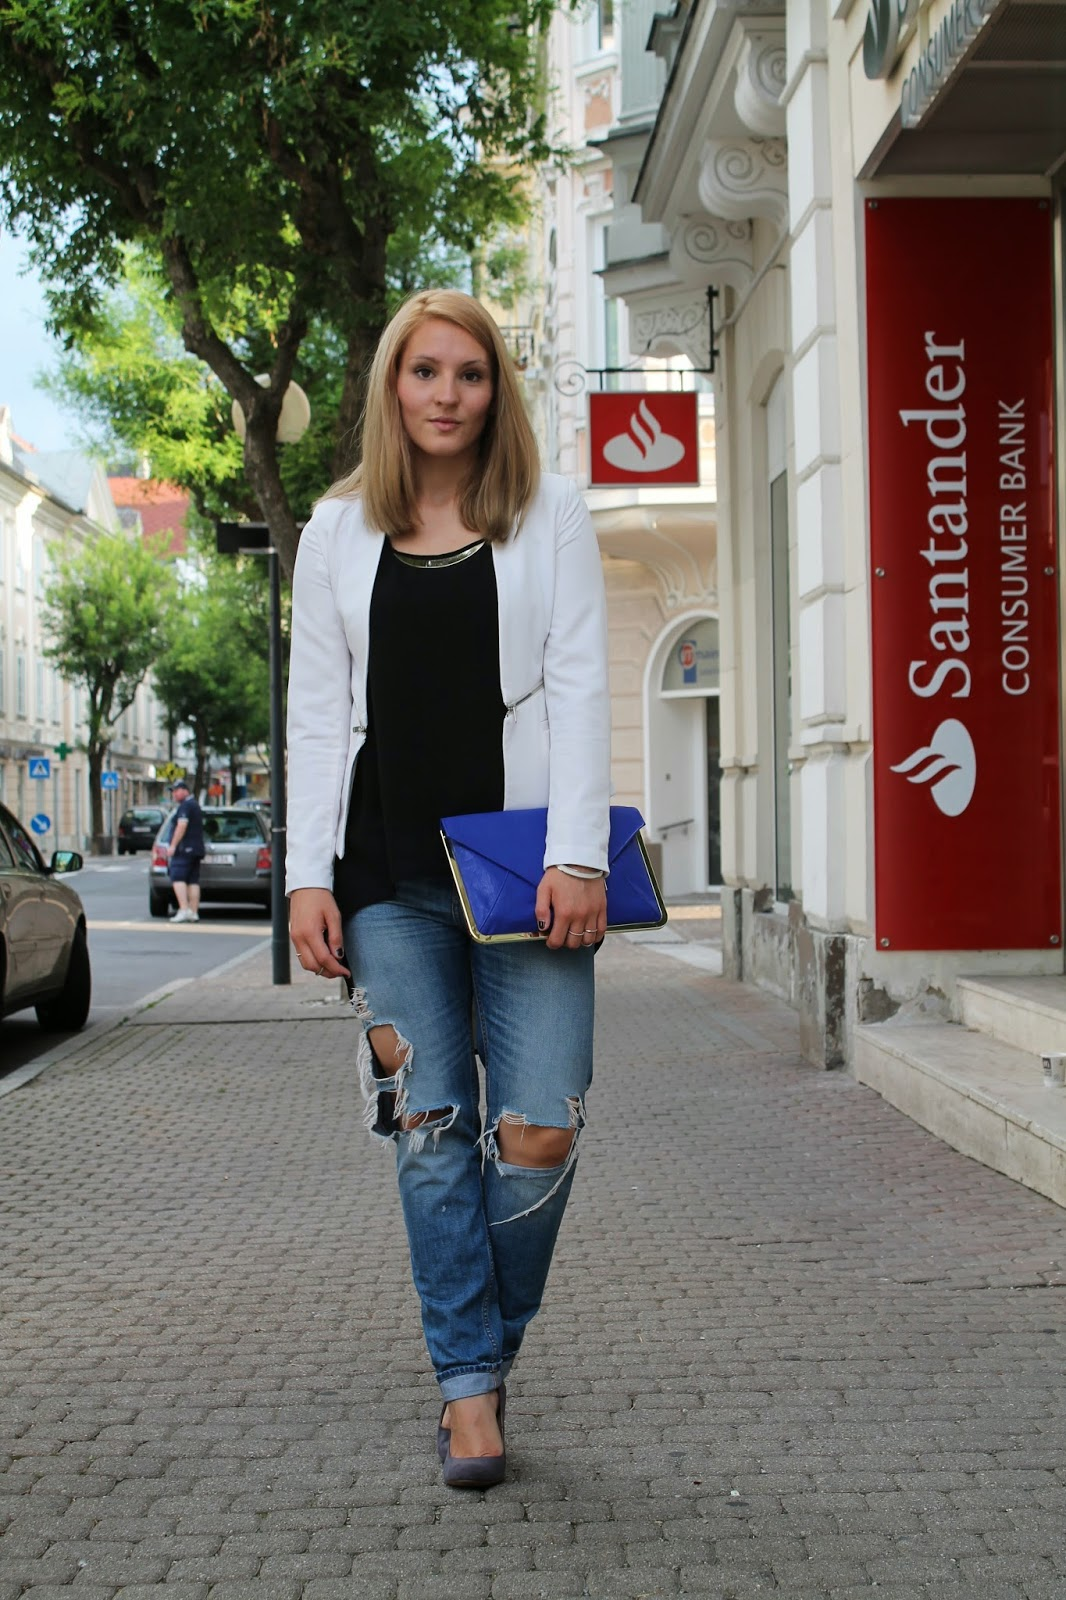 Fashionblogger Austria / Österreich / Deutsch / German / Kärnten / Carinthia / Klagenfurt / Köttmannsdorf / Spring Look / Classy / Edgy / Summer / Summer Style 2014 / Summer Look / Fashionista Look /   / Summer Look / Boyfriend Jeans / H&M / Grey Heels / Zara / White Blazer / Ann Chrstin / Black Longtop / Forever 21 / Clutch blue / Asos / Arm candy / Armparty /